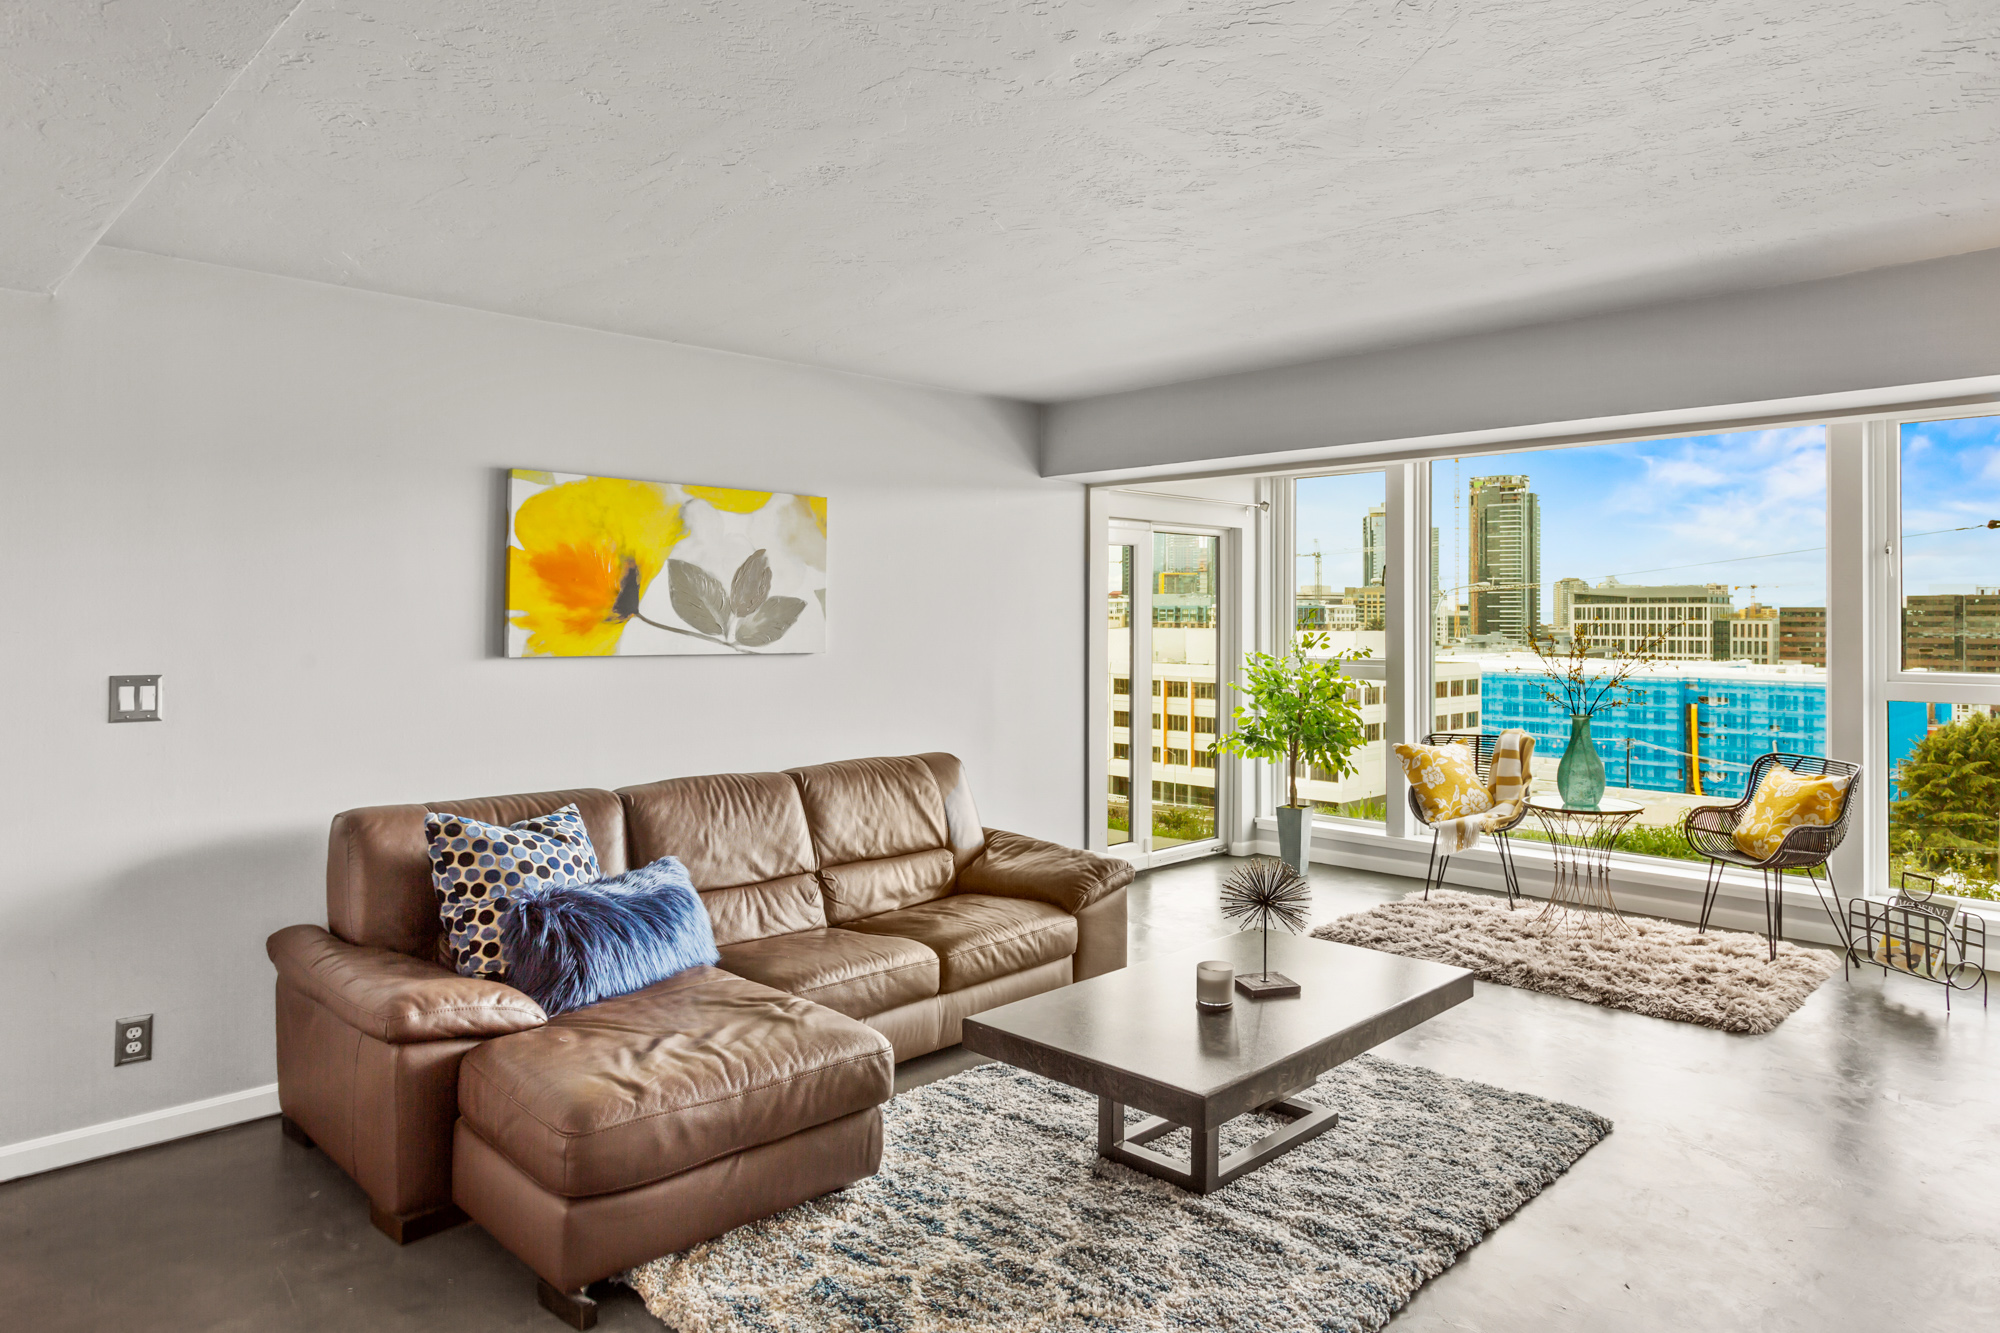 400 Melrose Avenue E #103, Seattle | Sold for $549,000